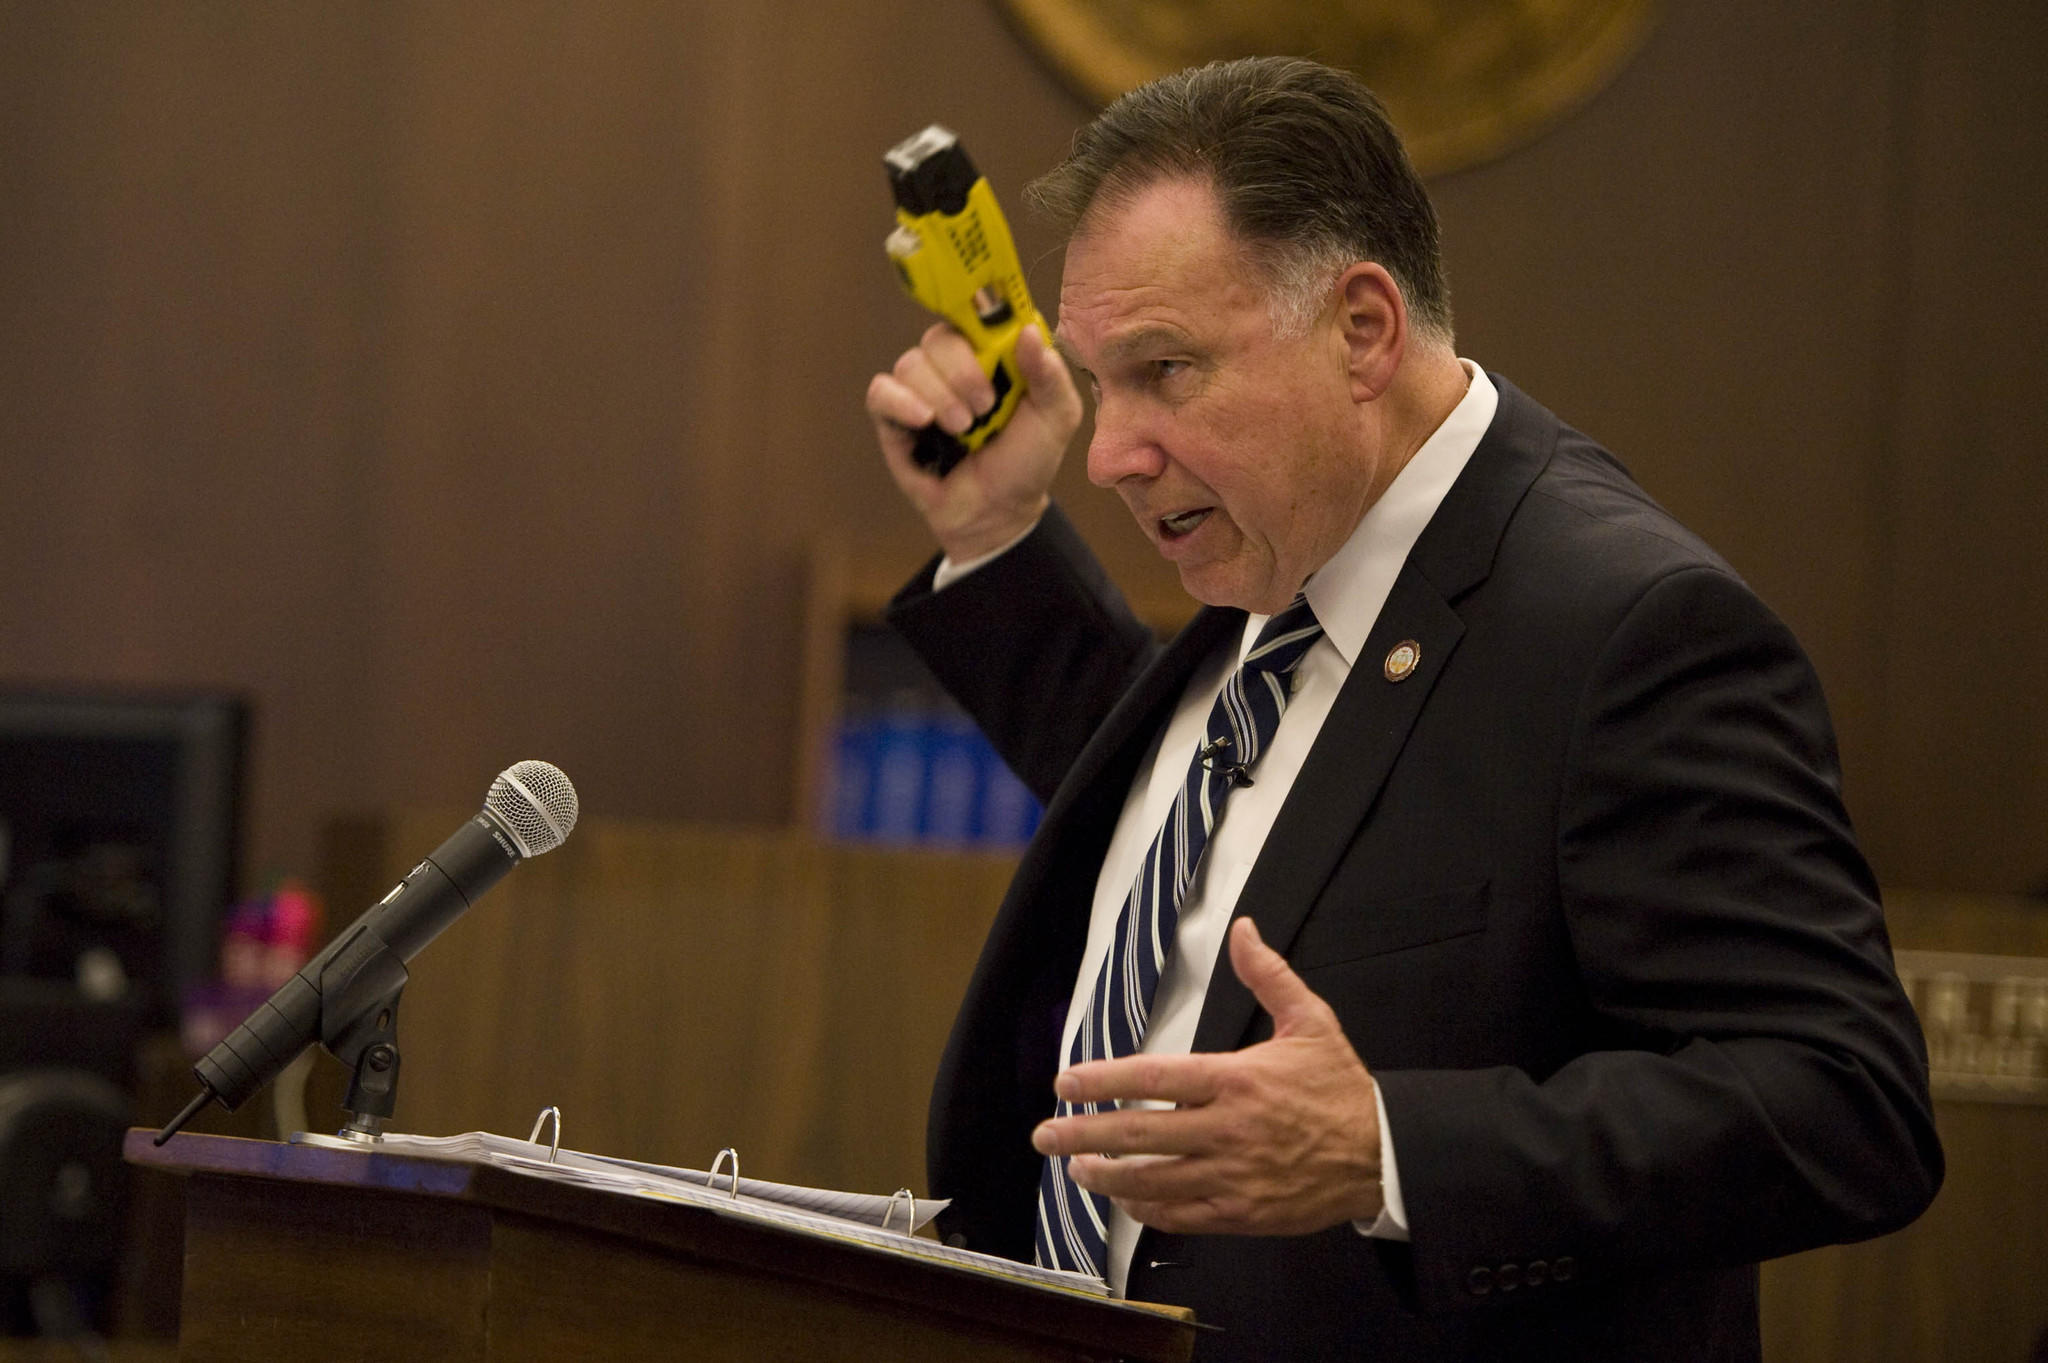 Orange County District Attorney Tony Rackauckas holds up a stun gun similar to the one used to beat Kelly Thomas.